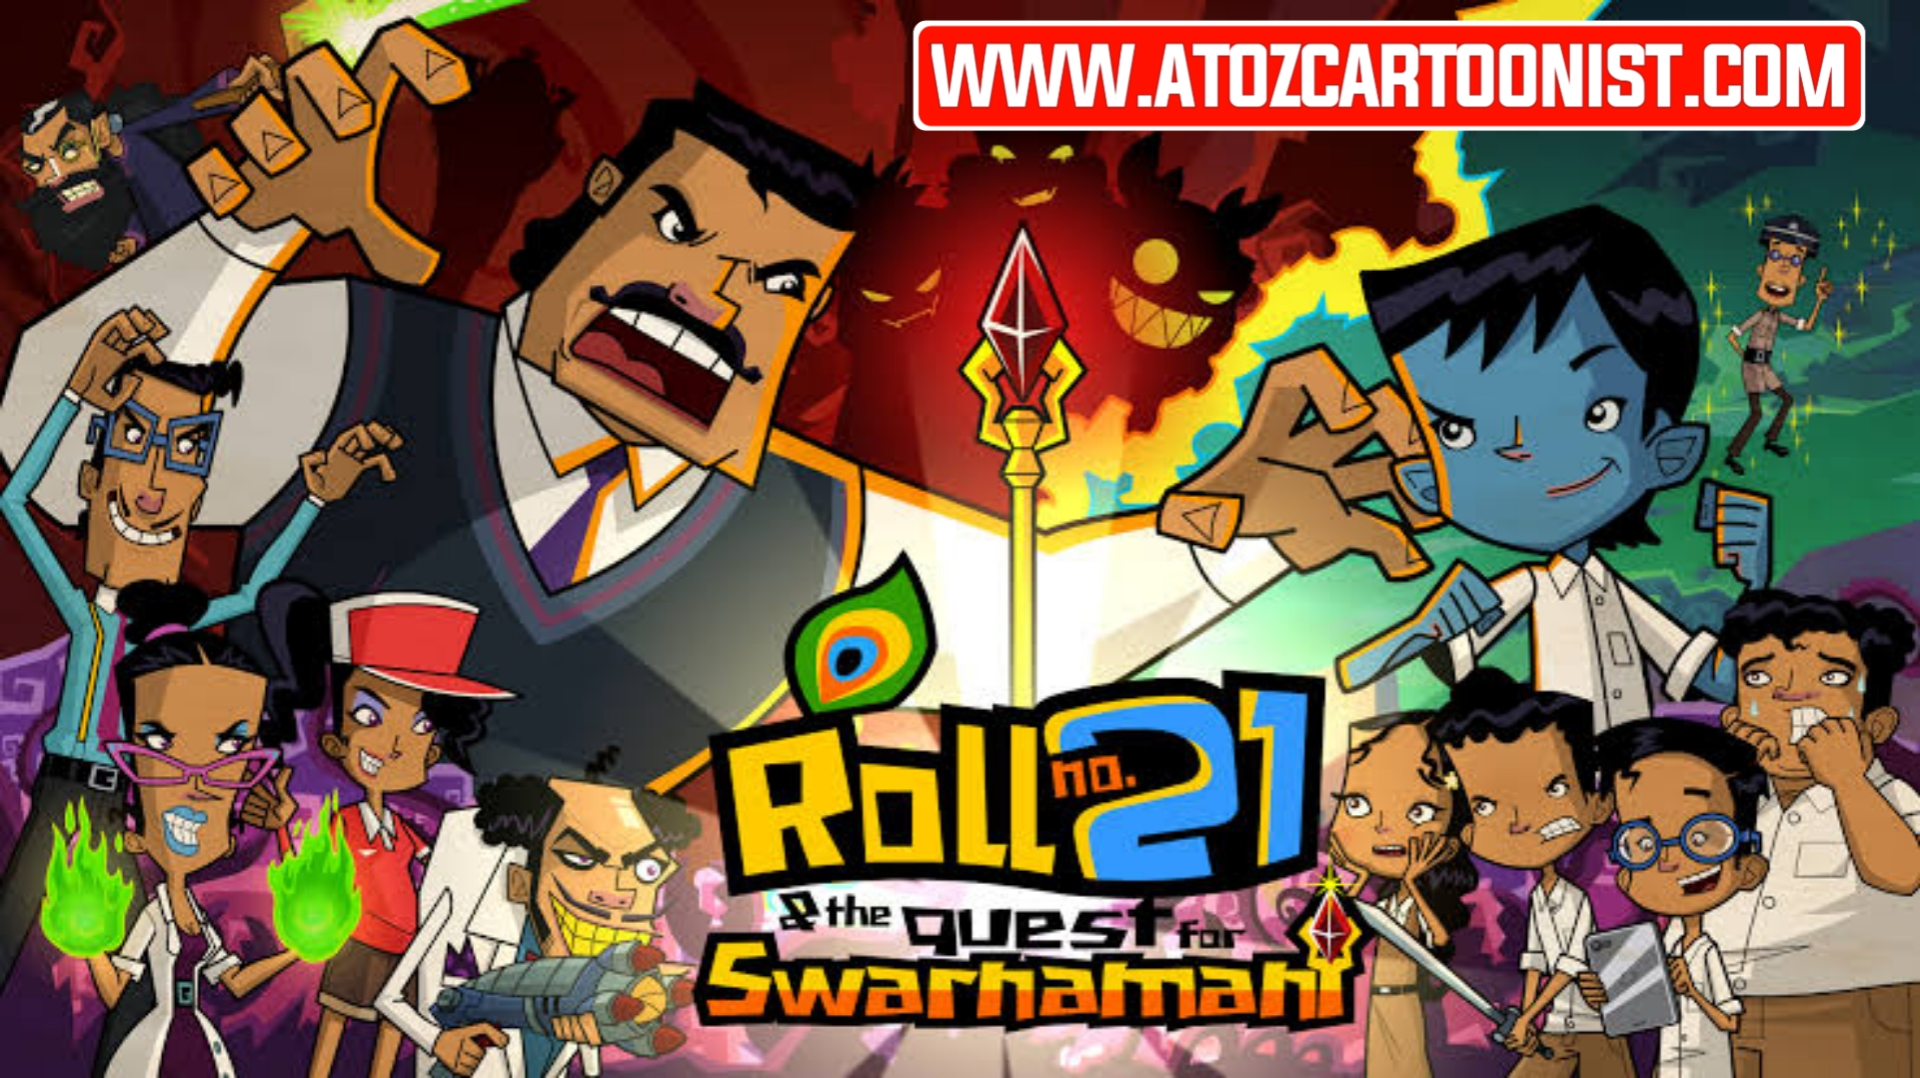 ROLL NO 21 AND THE QUEST FOR SWARNMANI FULL MOVIE IN TAMIL DOWNLOAD (480P)